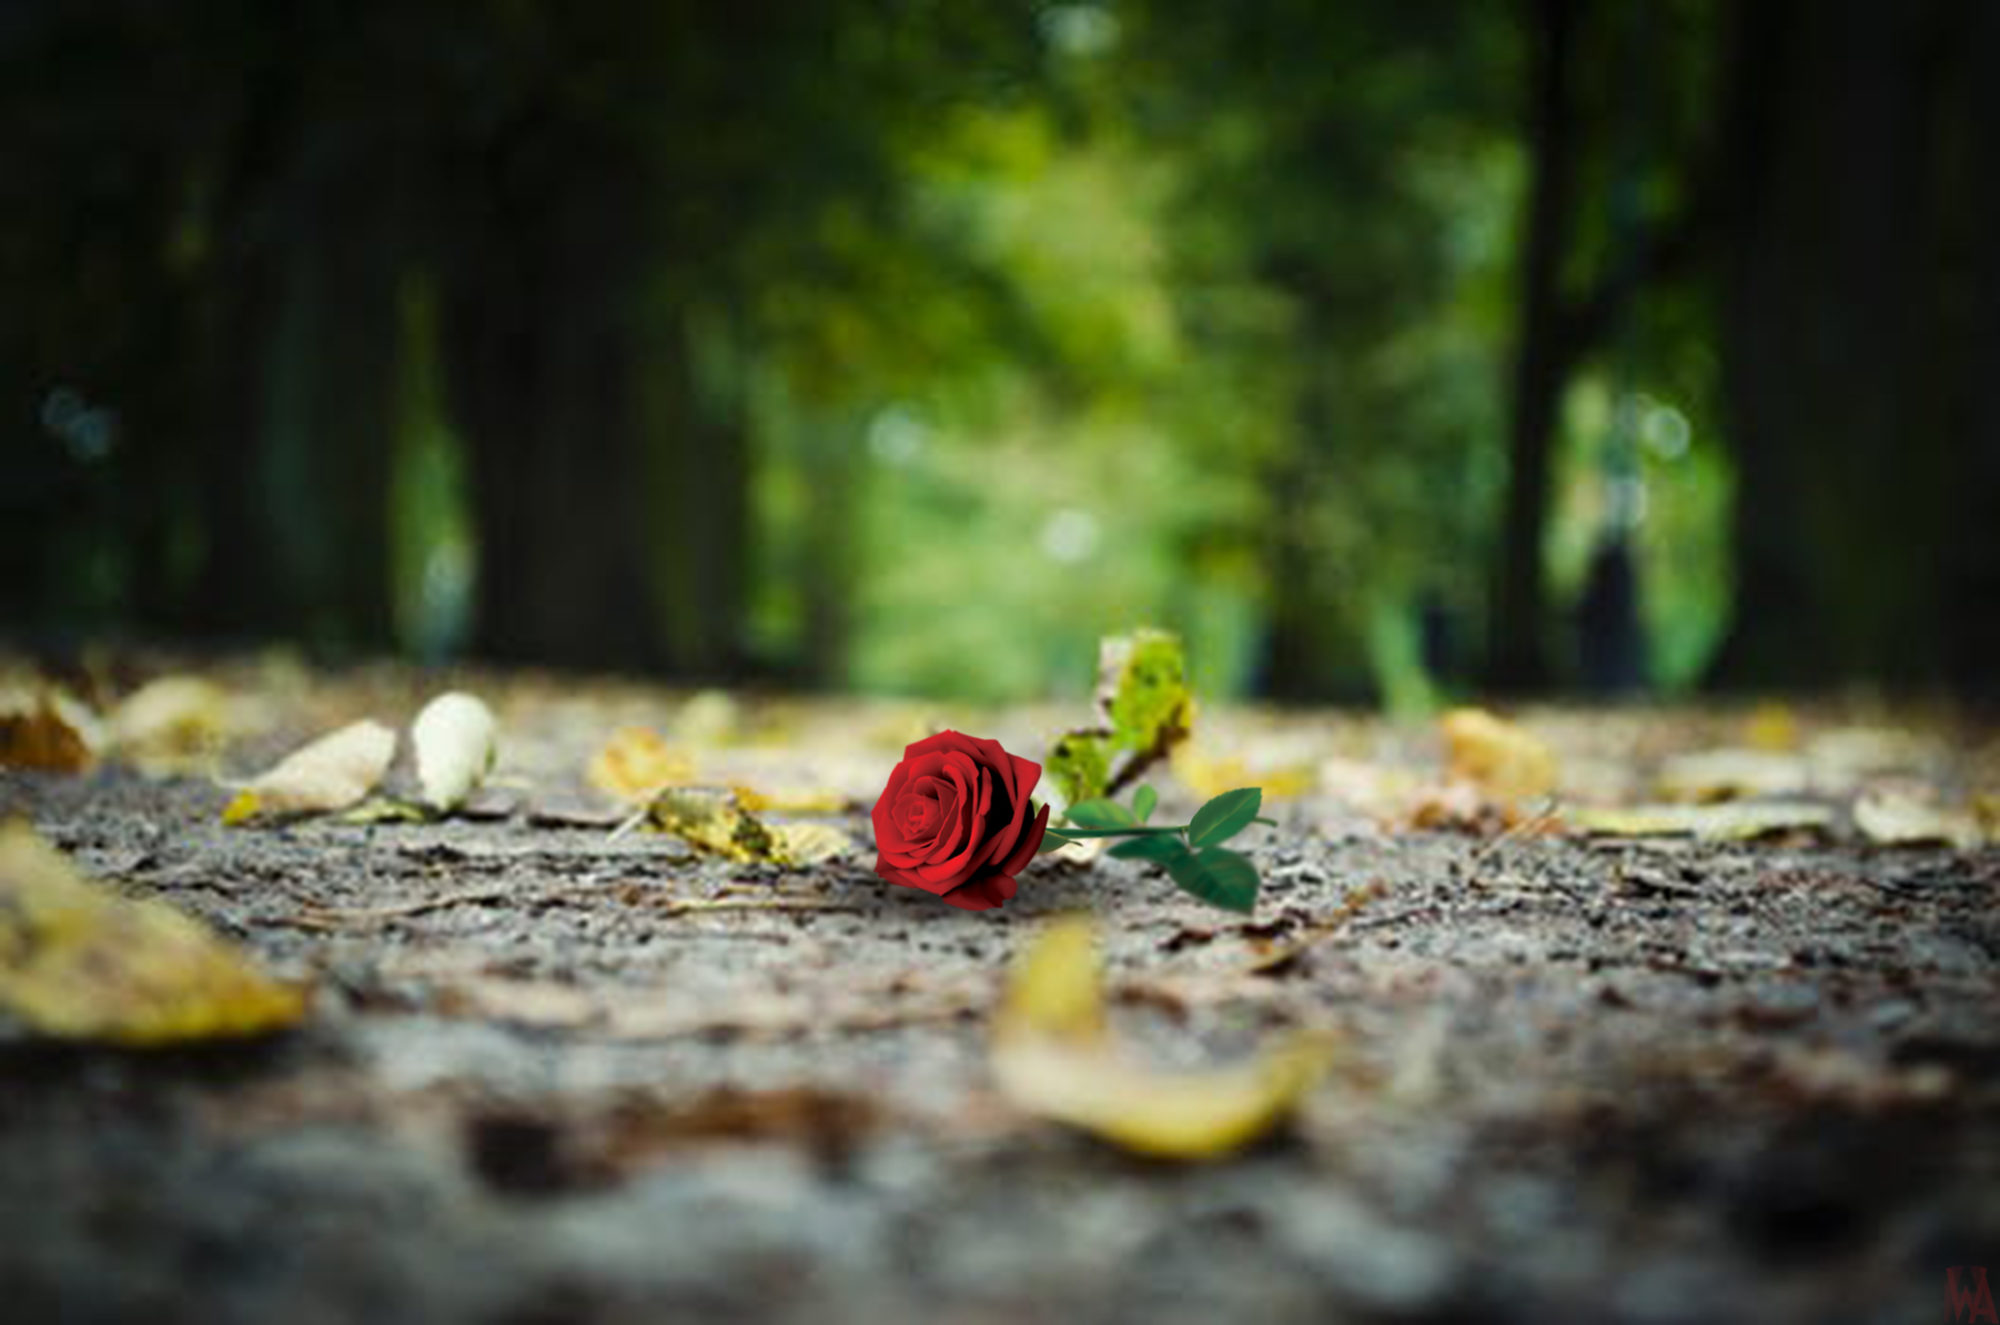 red rose blur nature background hd wallpaper